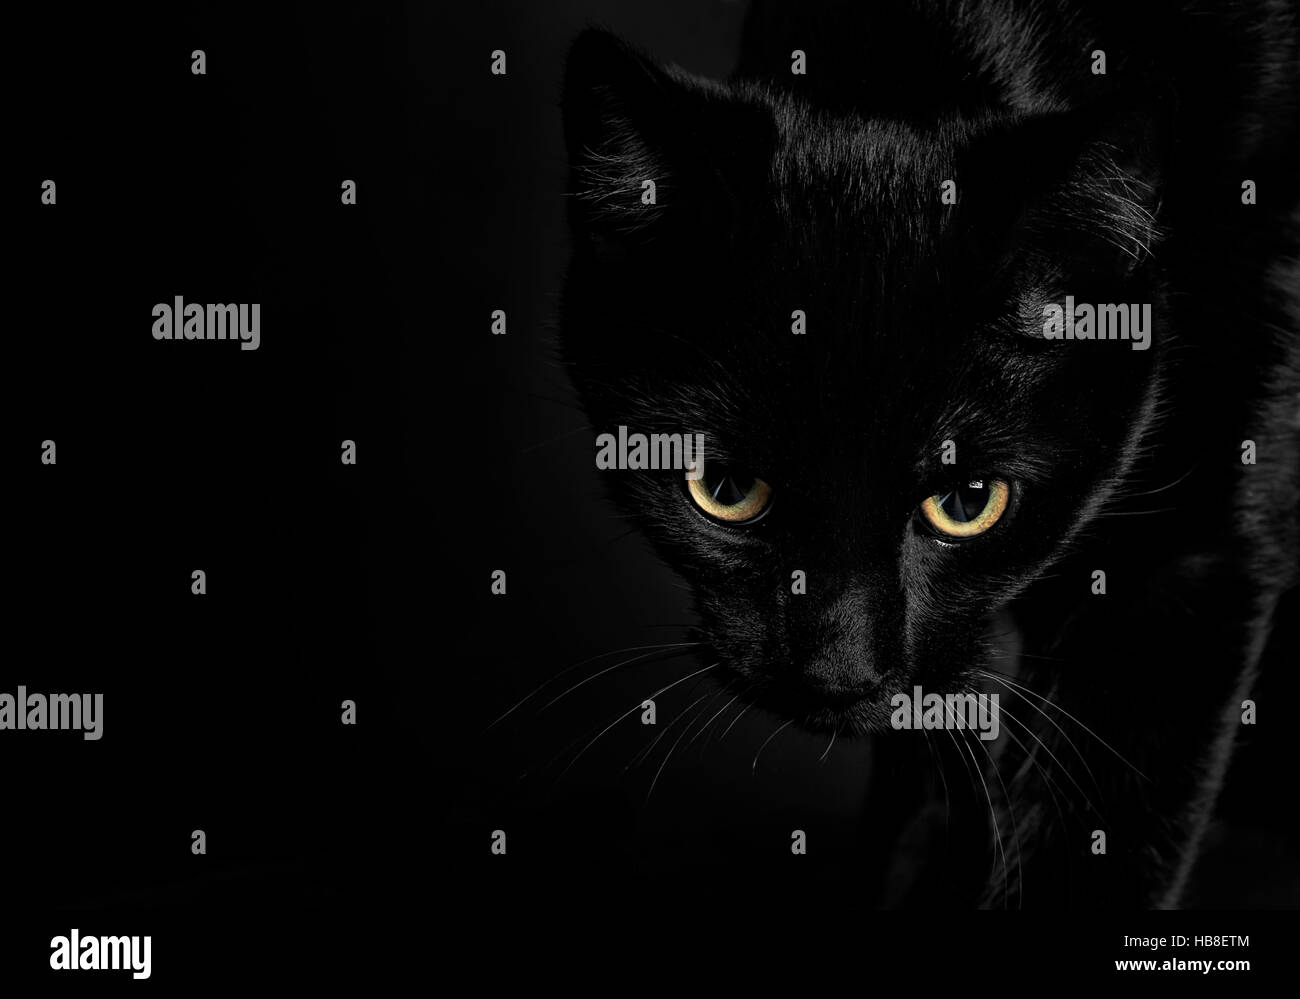 Portrait, black cat with intense look and shiny yellow eyes - Stock Image